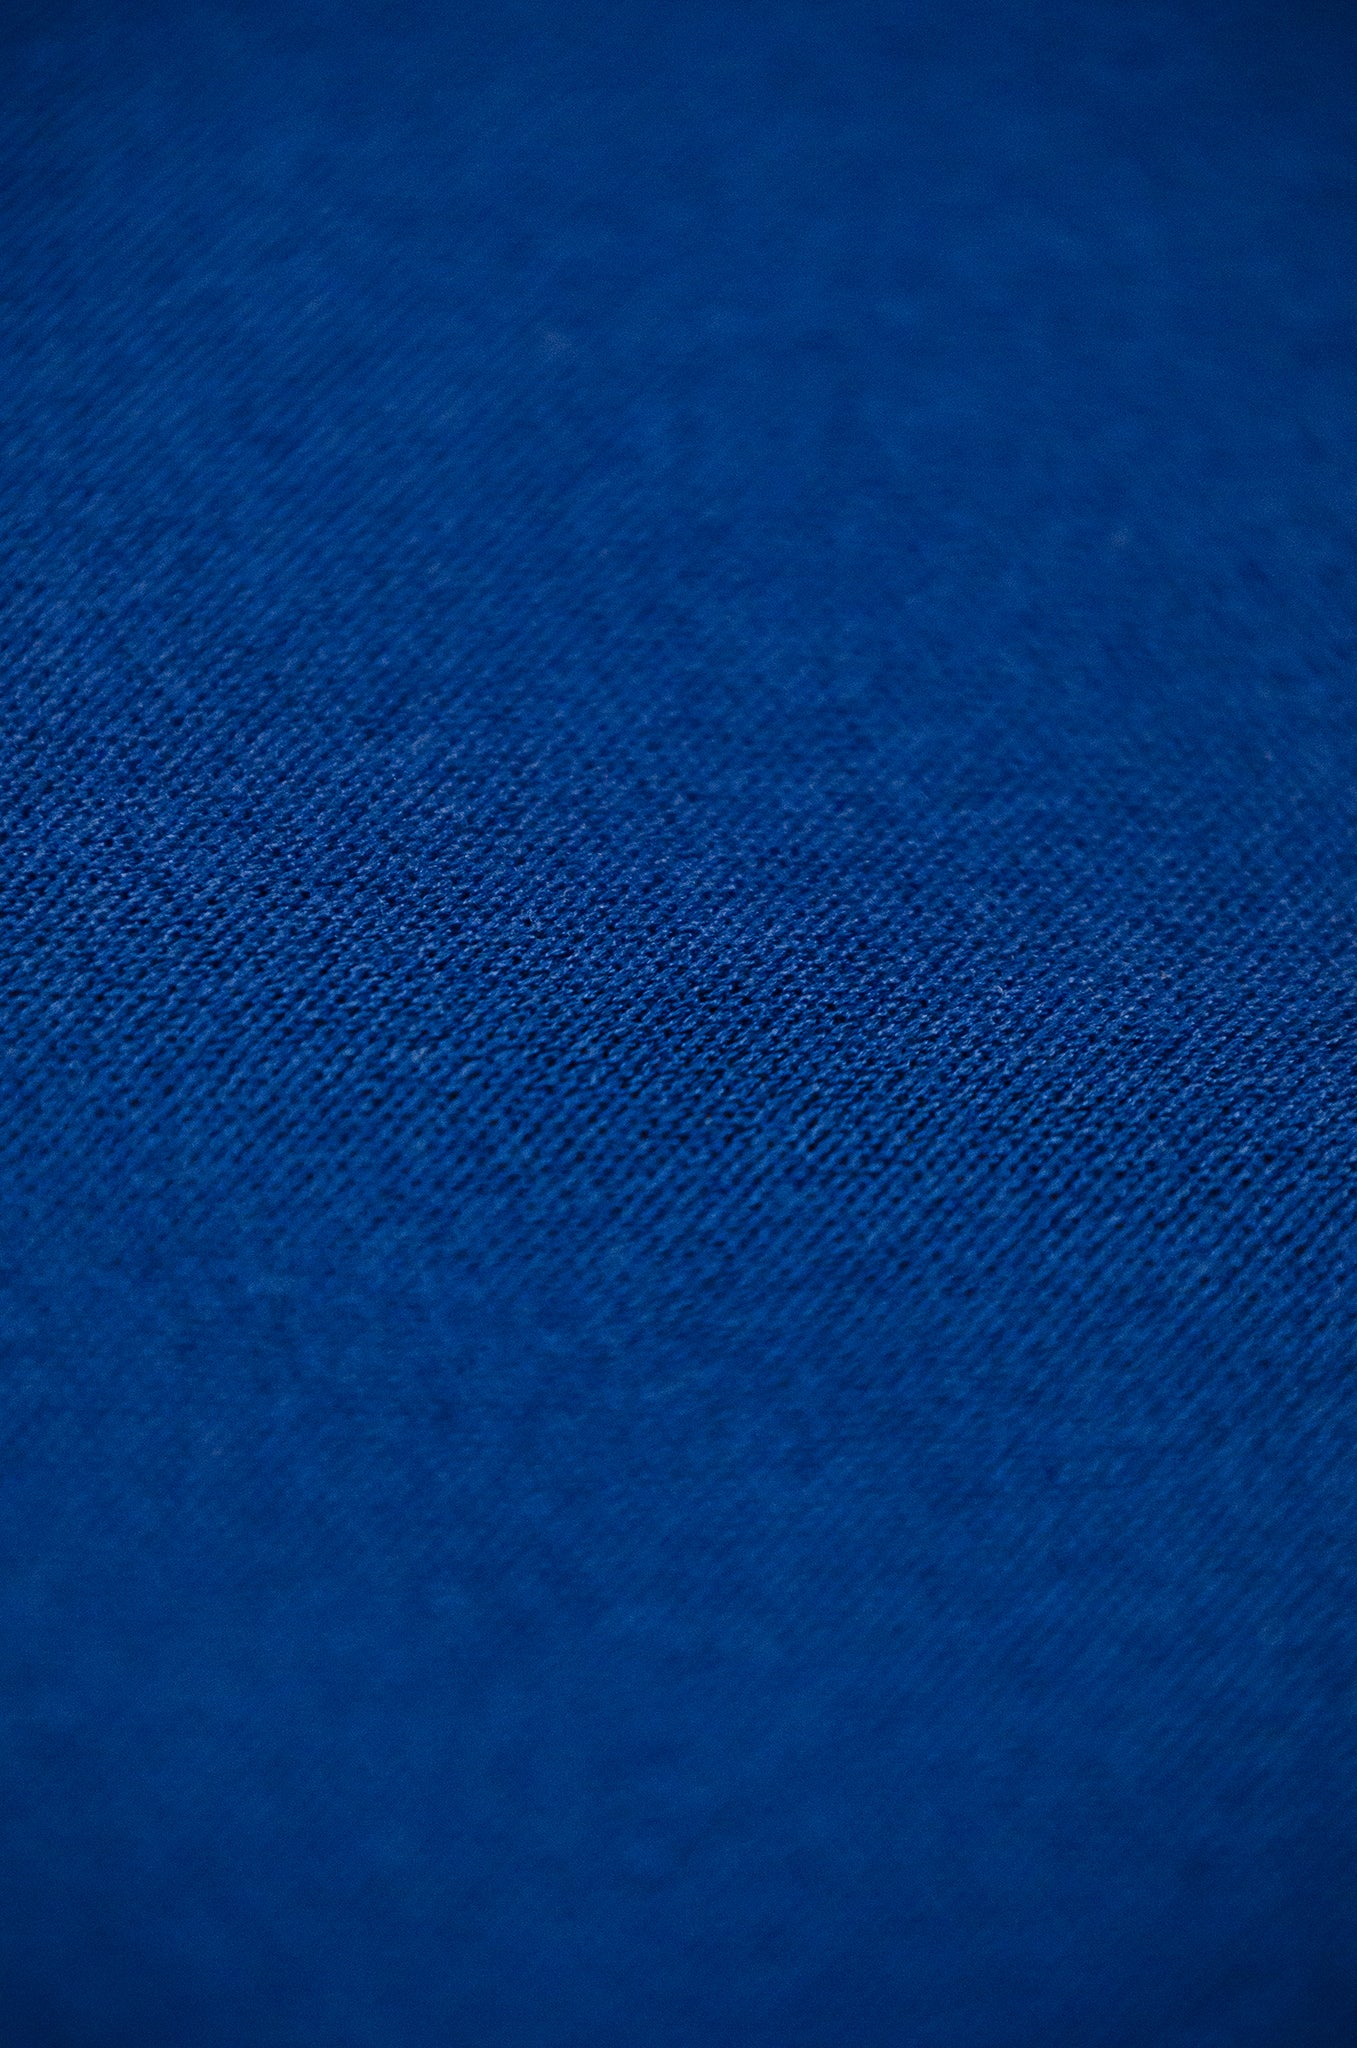 Maté Polo Tricot Compact Cotton (lake blue)